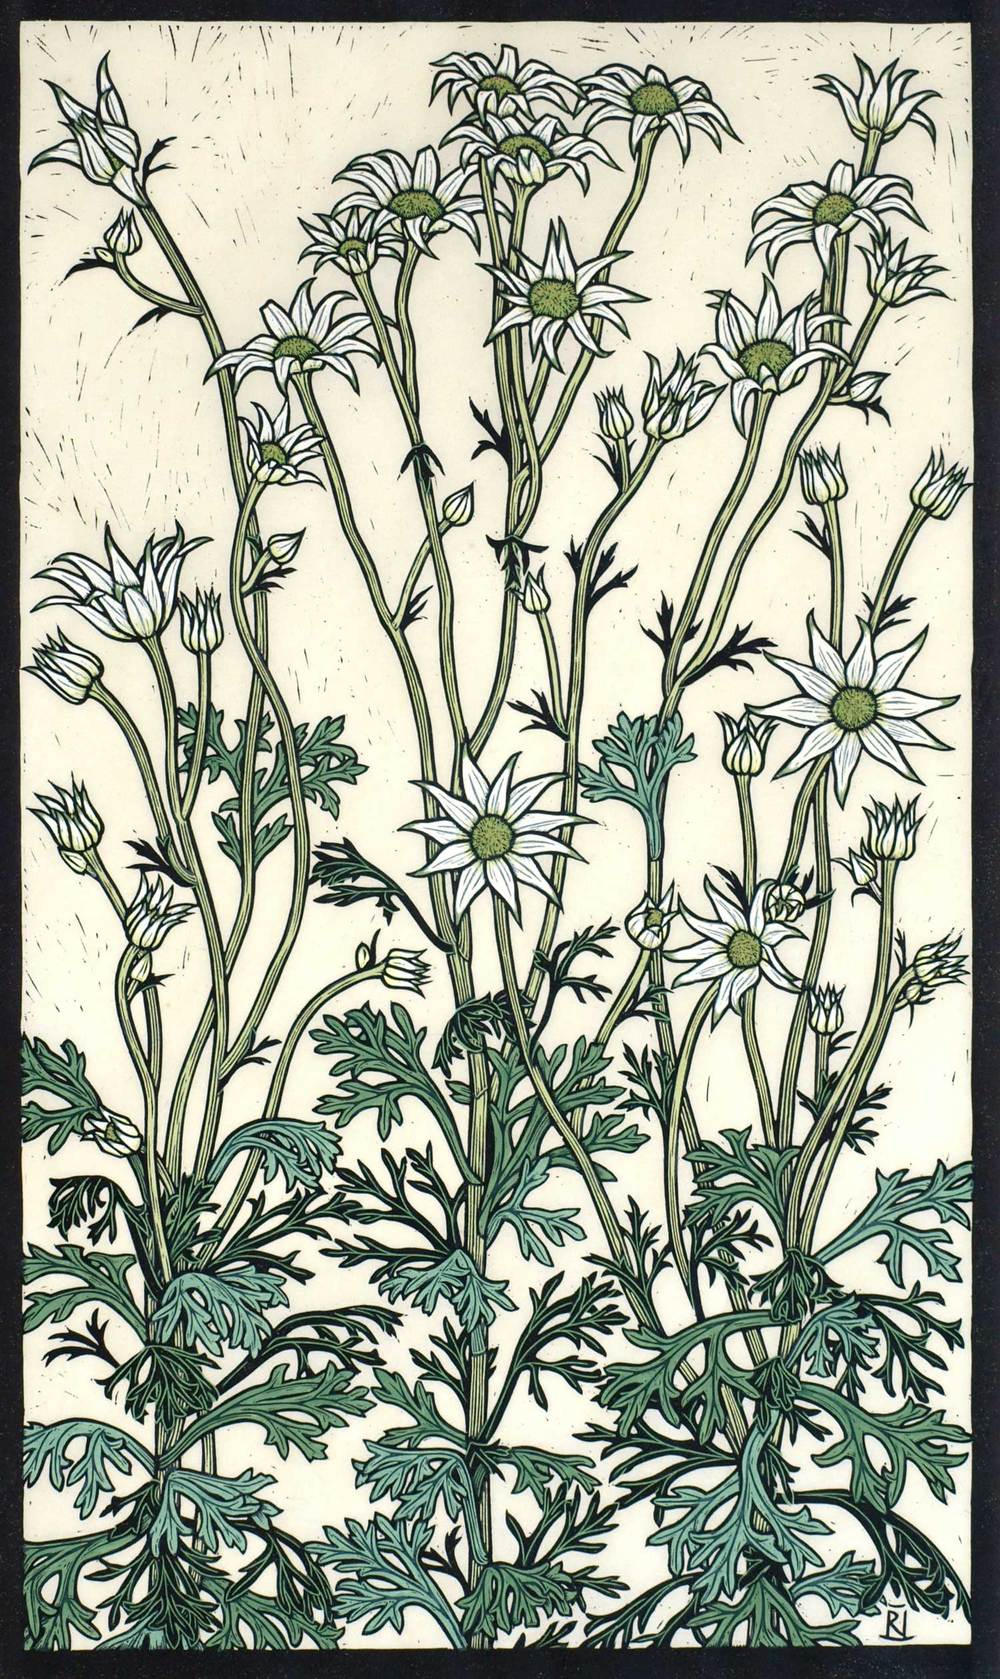 FLANNEL FLOWER  67 X 40 CM    EDITION OF 50  HAND COLOURED LINOCUT ON HANDMADE JAPANESE PAPER  $1,350